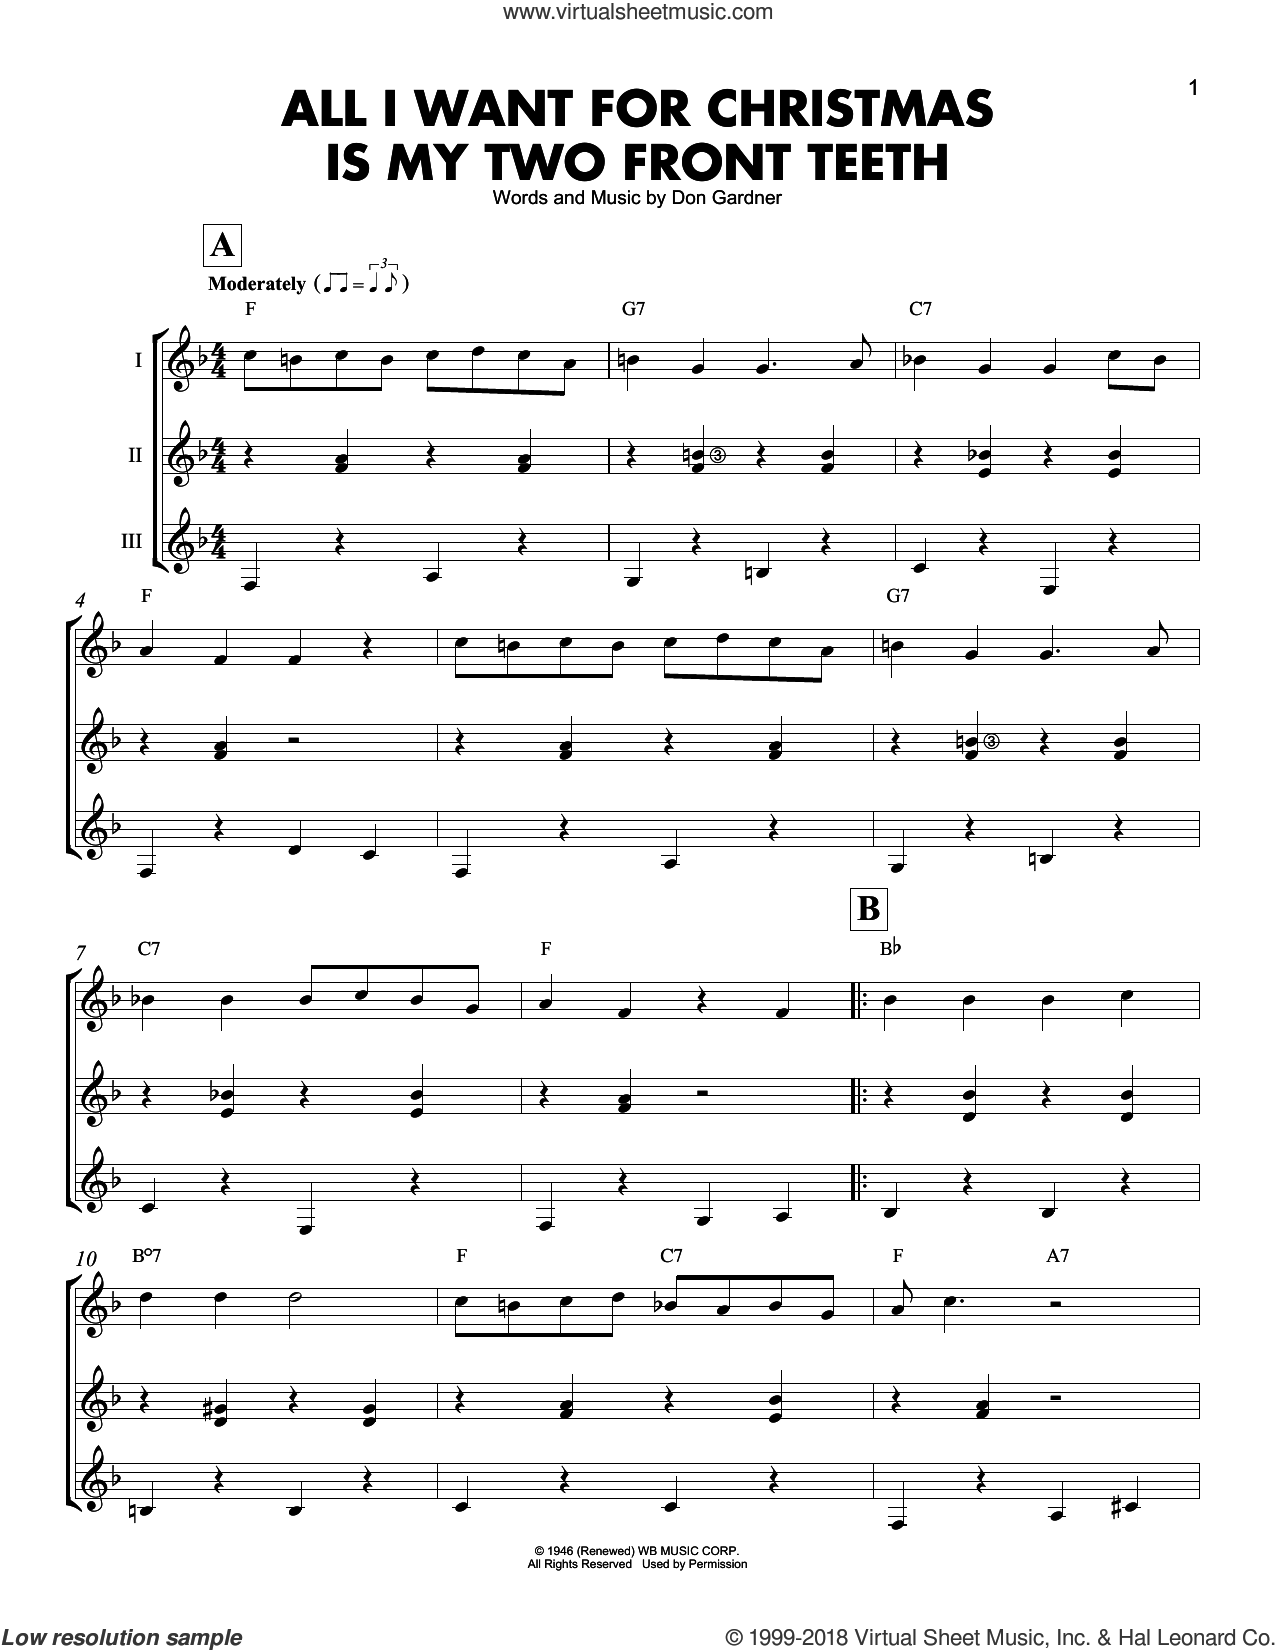 All I Want For Christmas Is My Two Front Teeth sheet music for guitar ensemble by Spike Jones & the City Slickers and Don Gardner, intermediate skill level